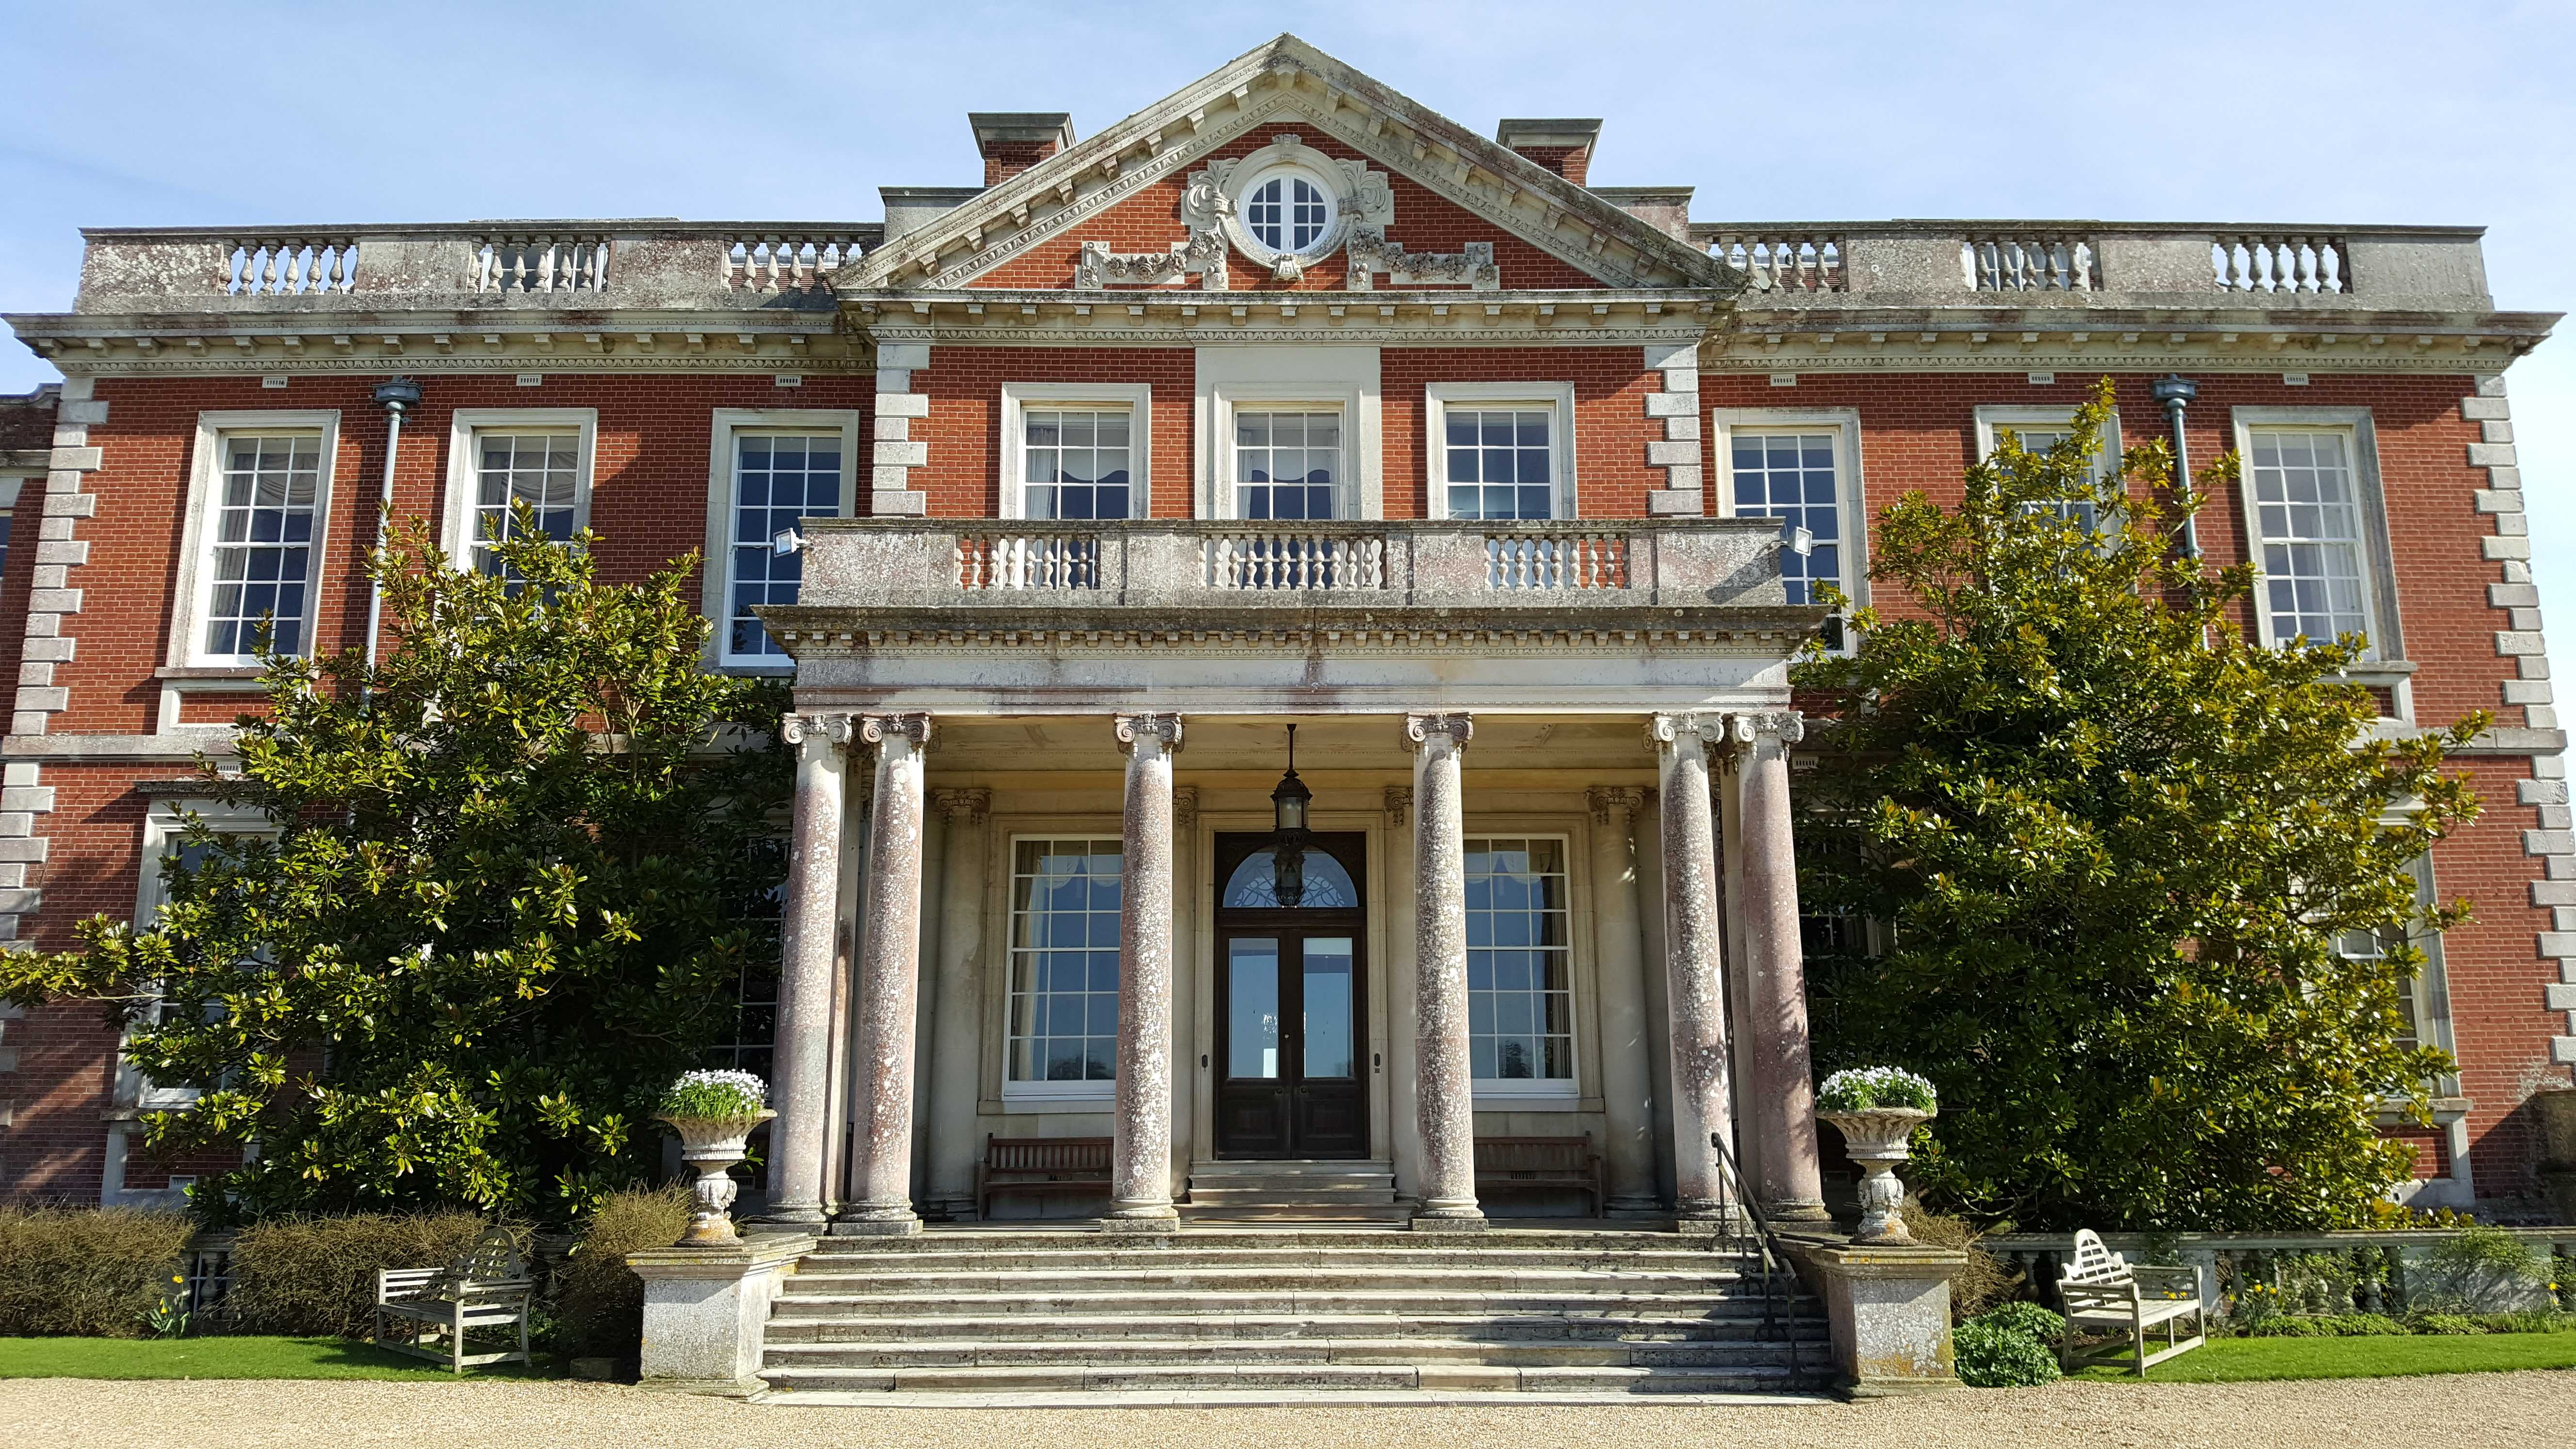 Stansted House and Park, West Sussex, England